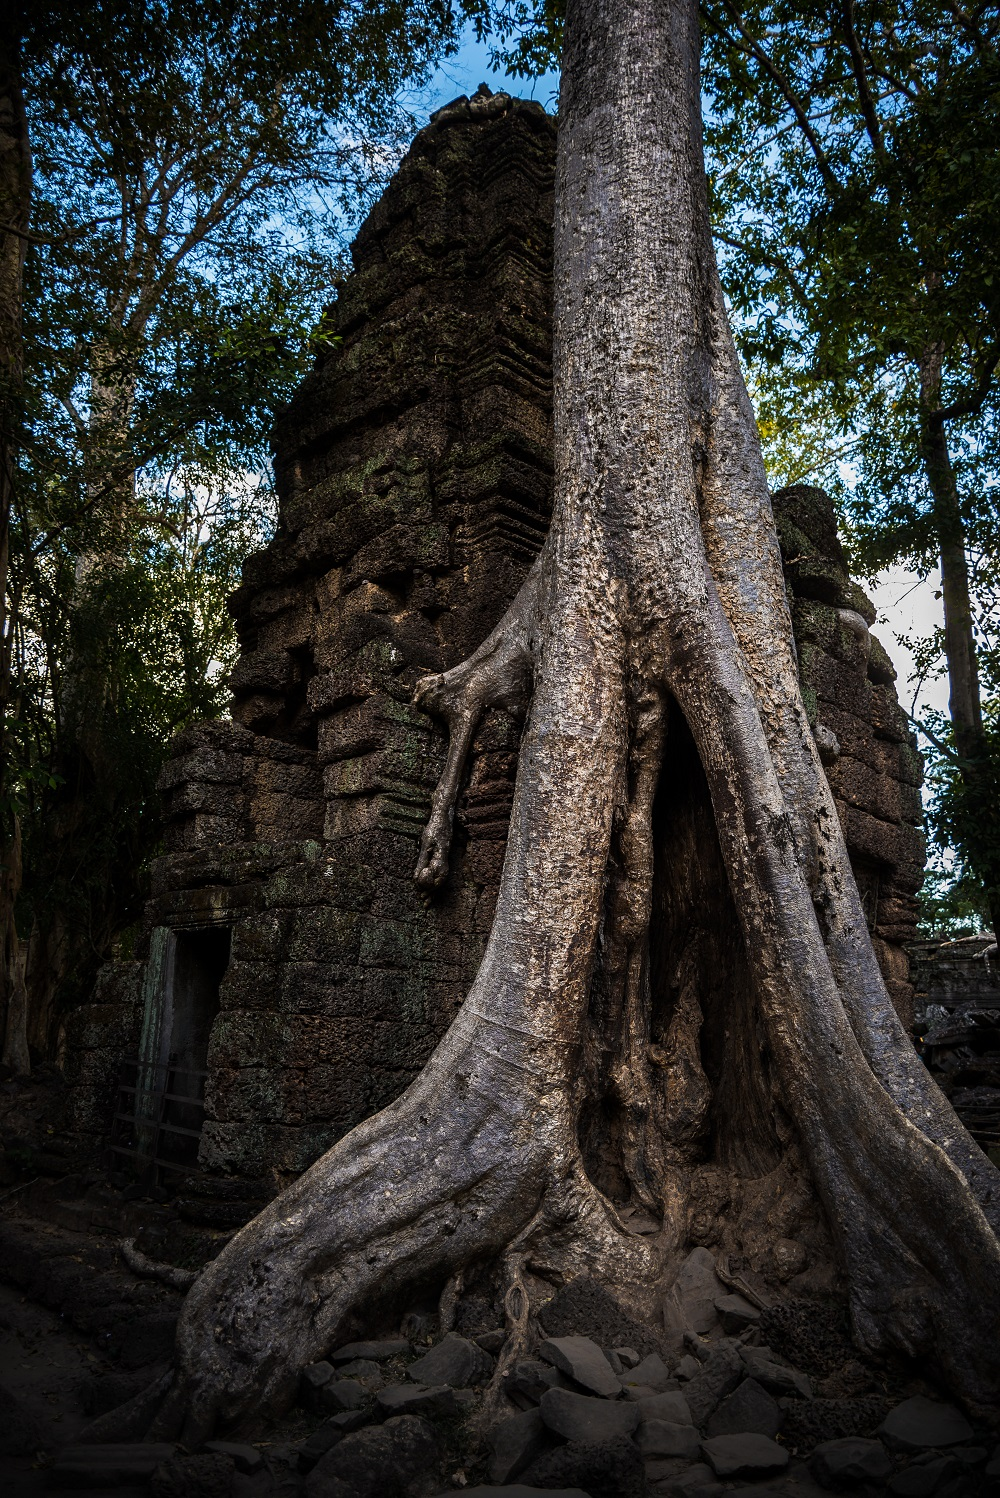 Nature taking over at Ta Prohm